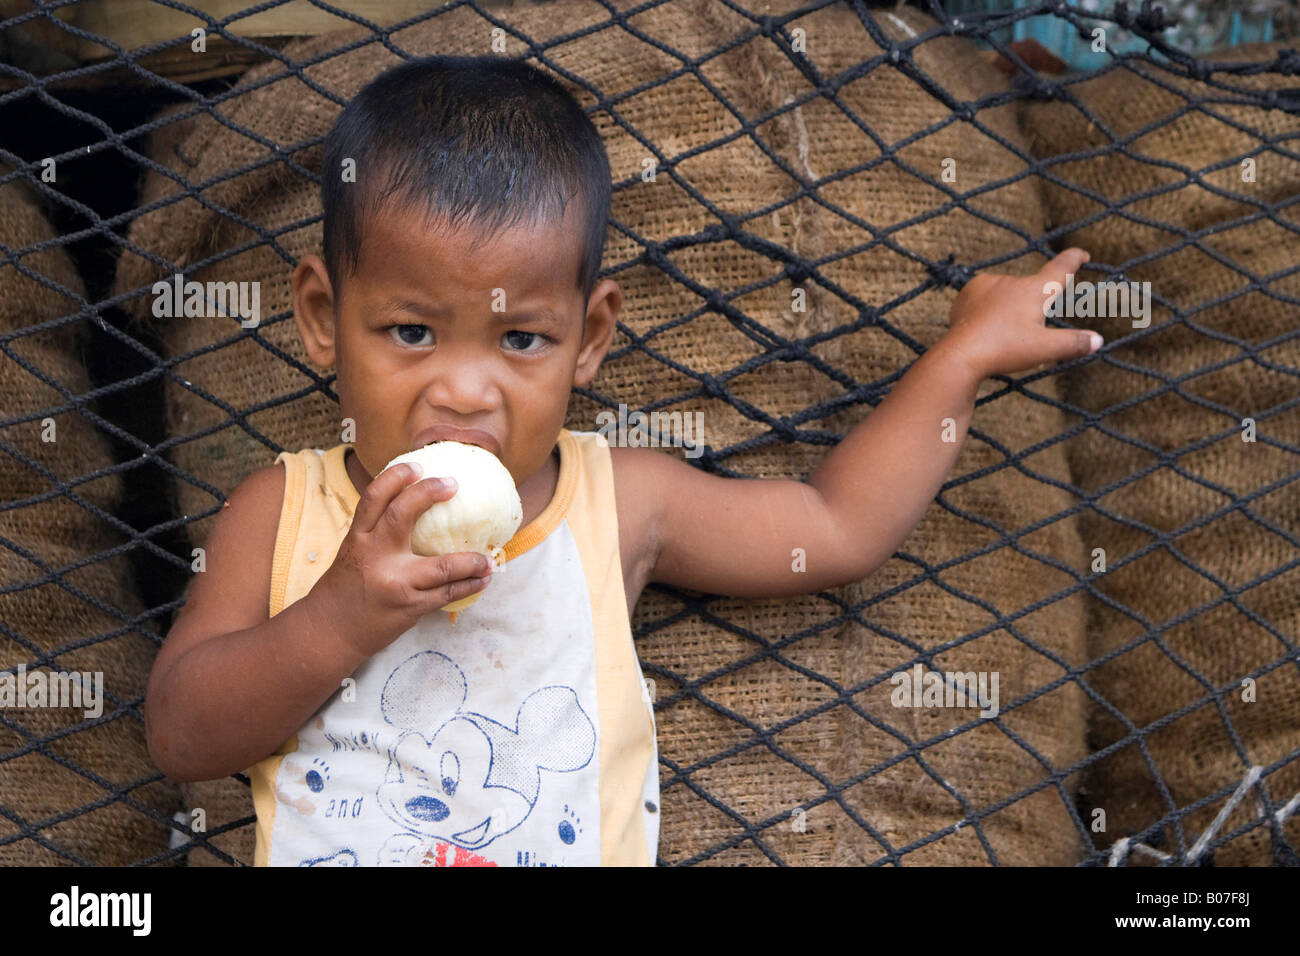 Young child, Jaluit Atoll, Marshall Islands - Stock Image